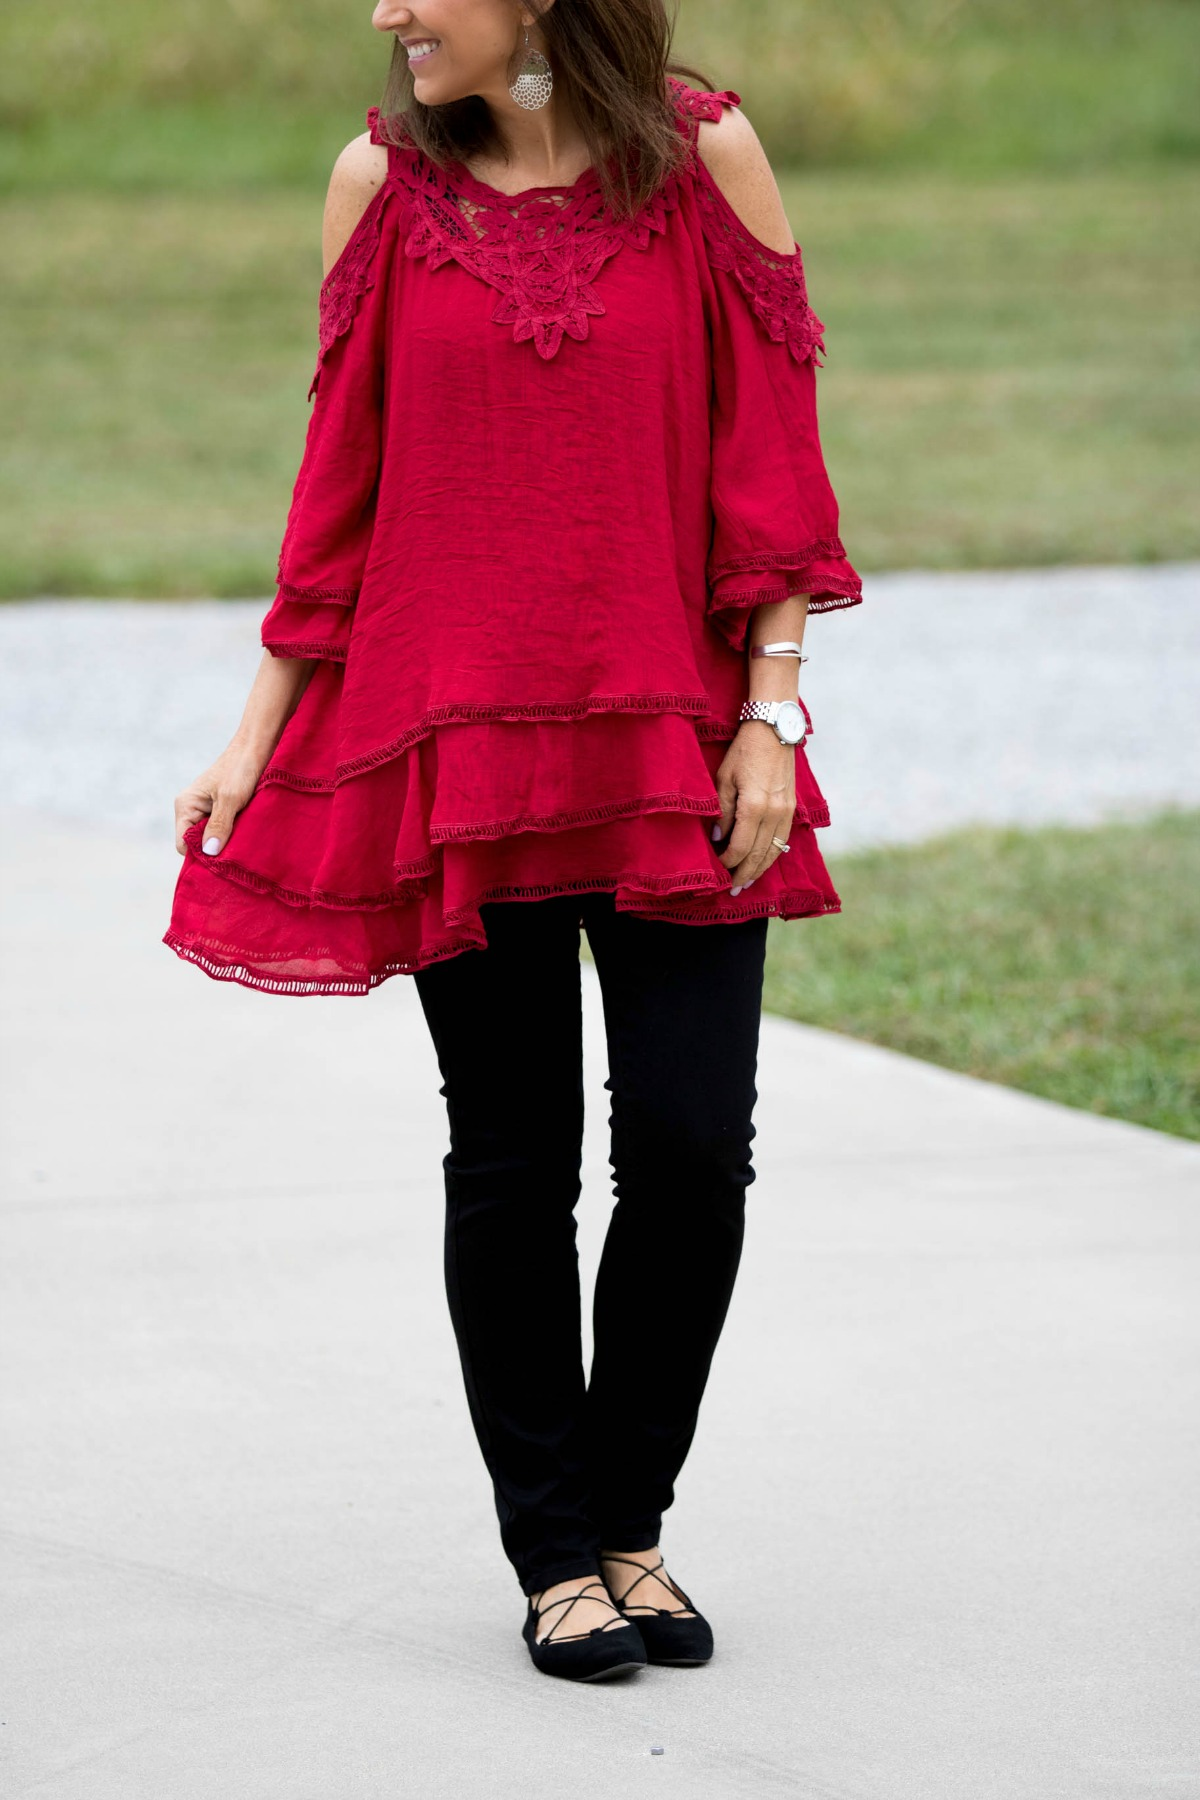 Cyndi is wearing a cold shoulder lace tunic for fall